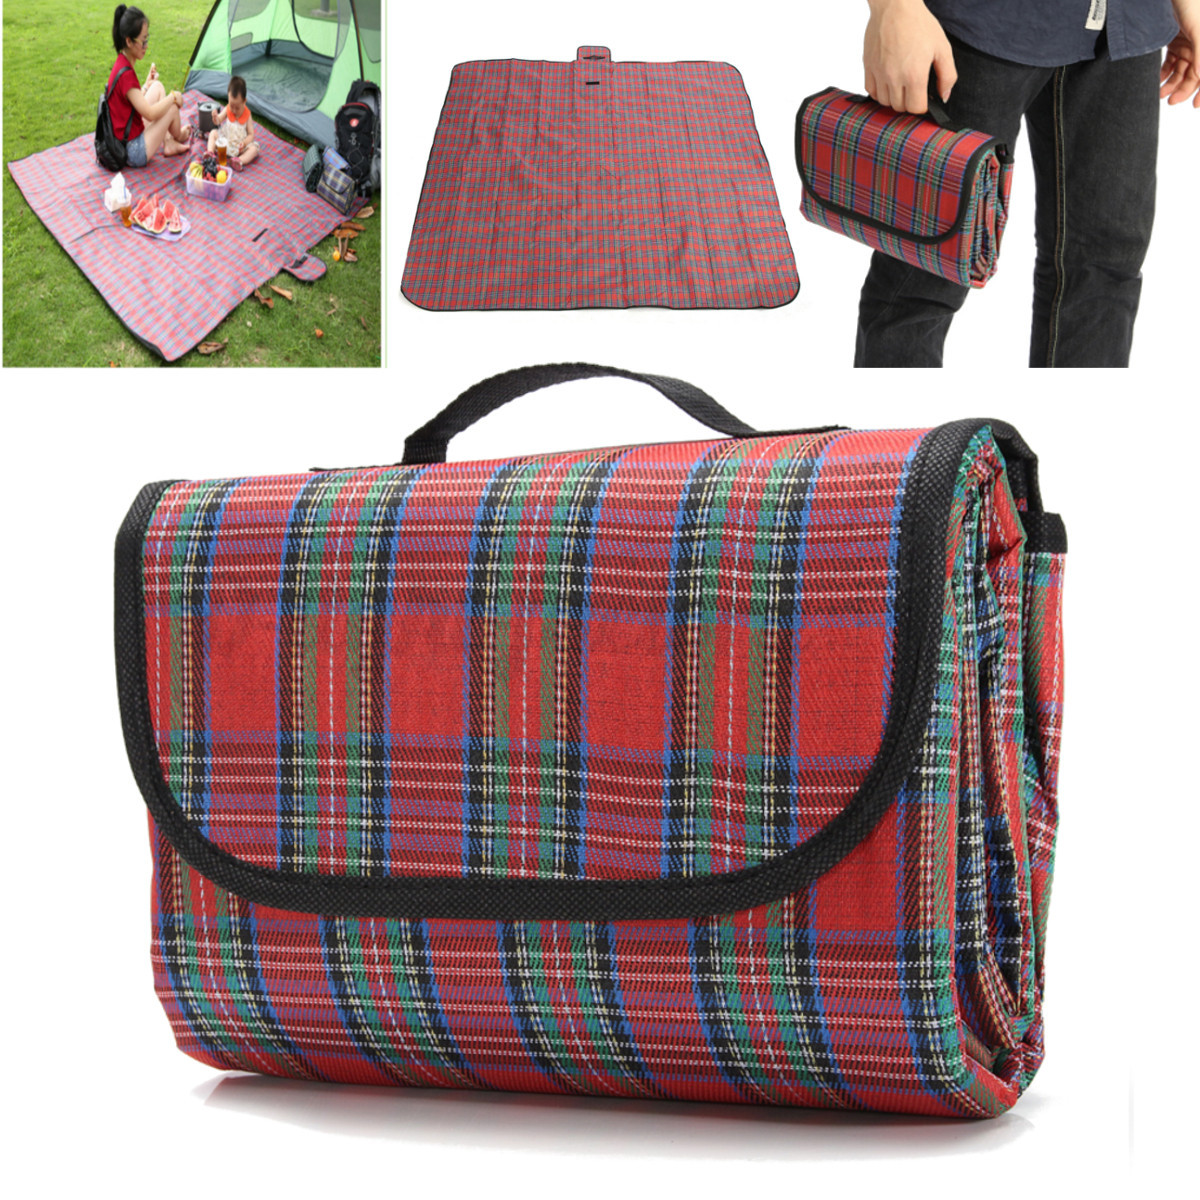 2x2m waterproof extra large picnic blanket rug mat for for Au maison picnic blanket